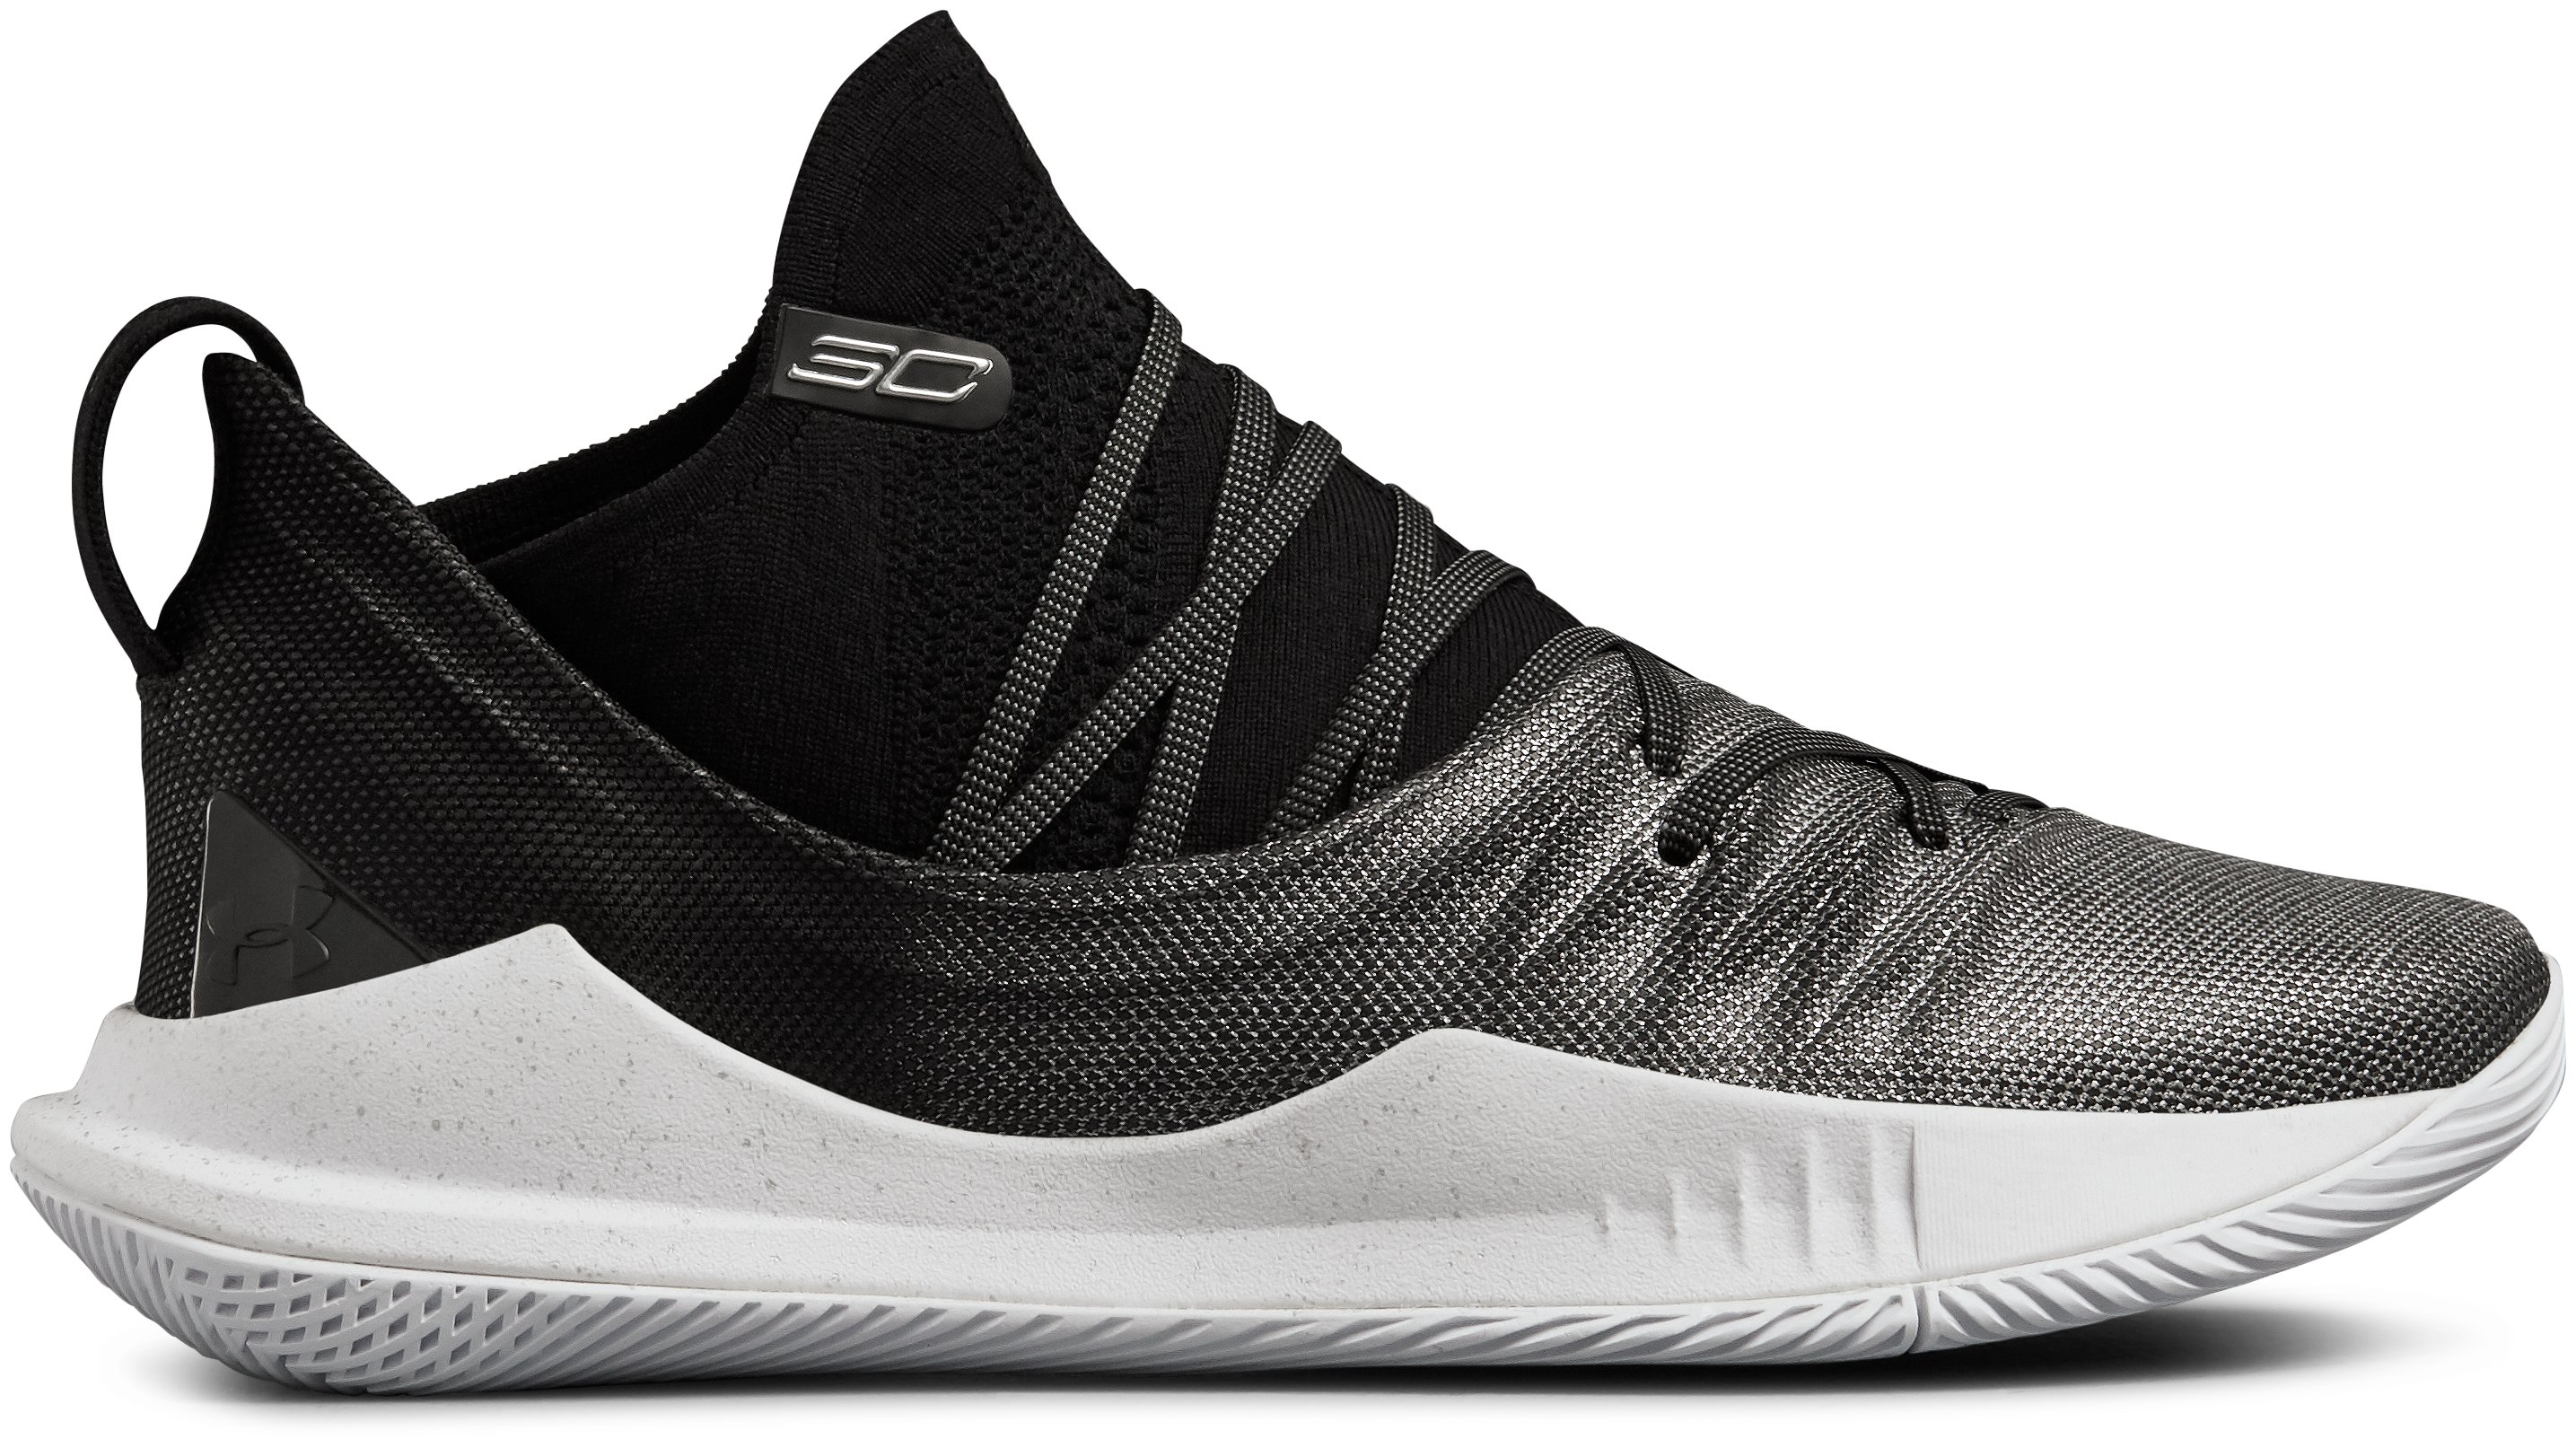 UA Curry 5 Basketball Shoes, 360 degree view